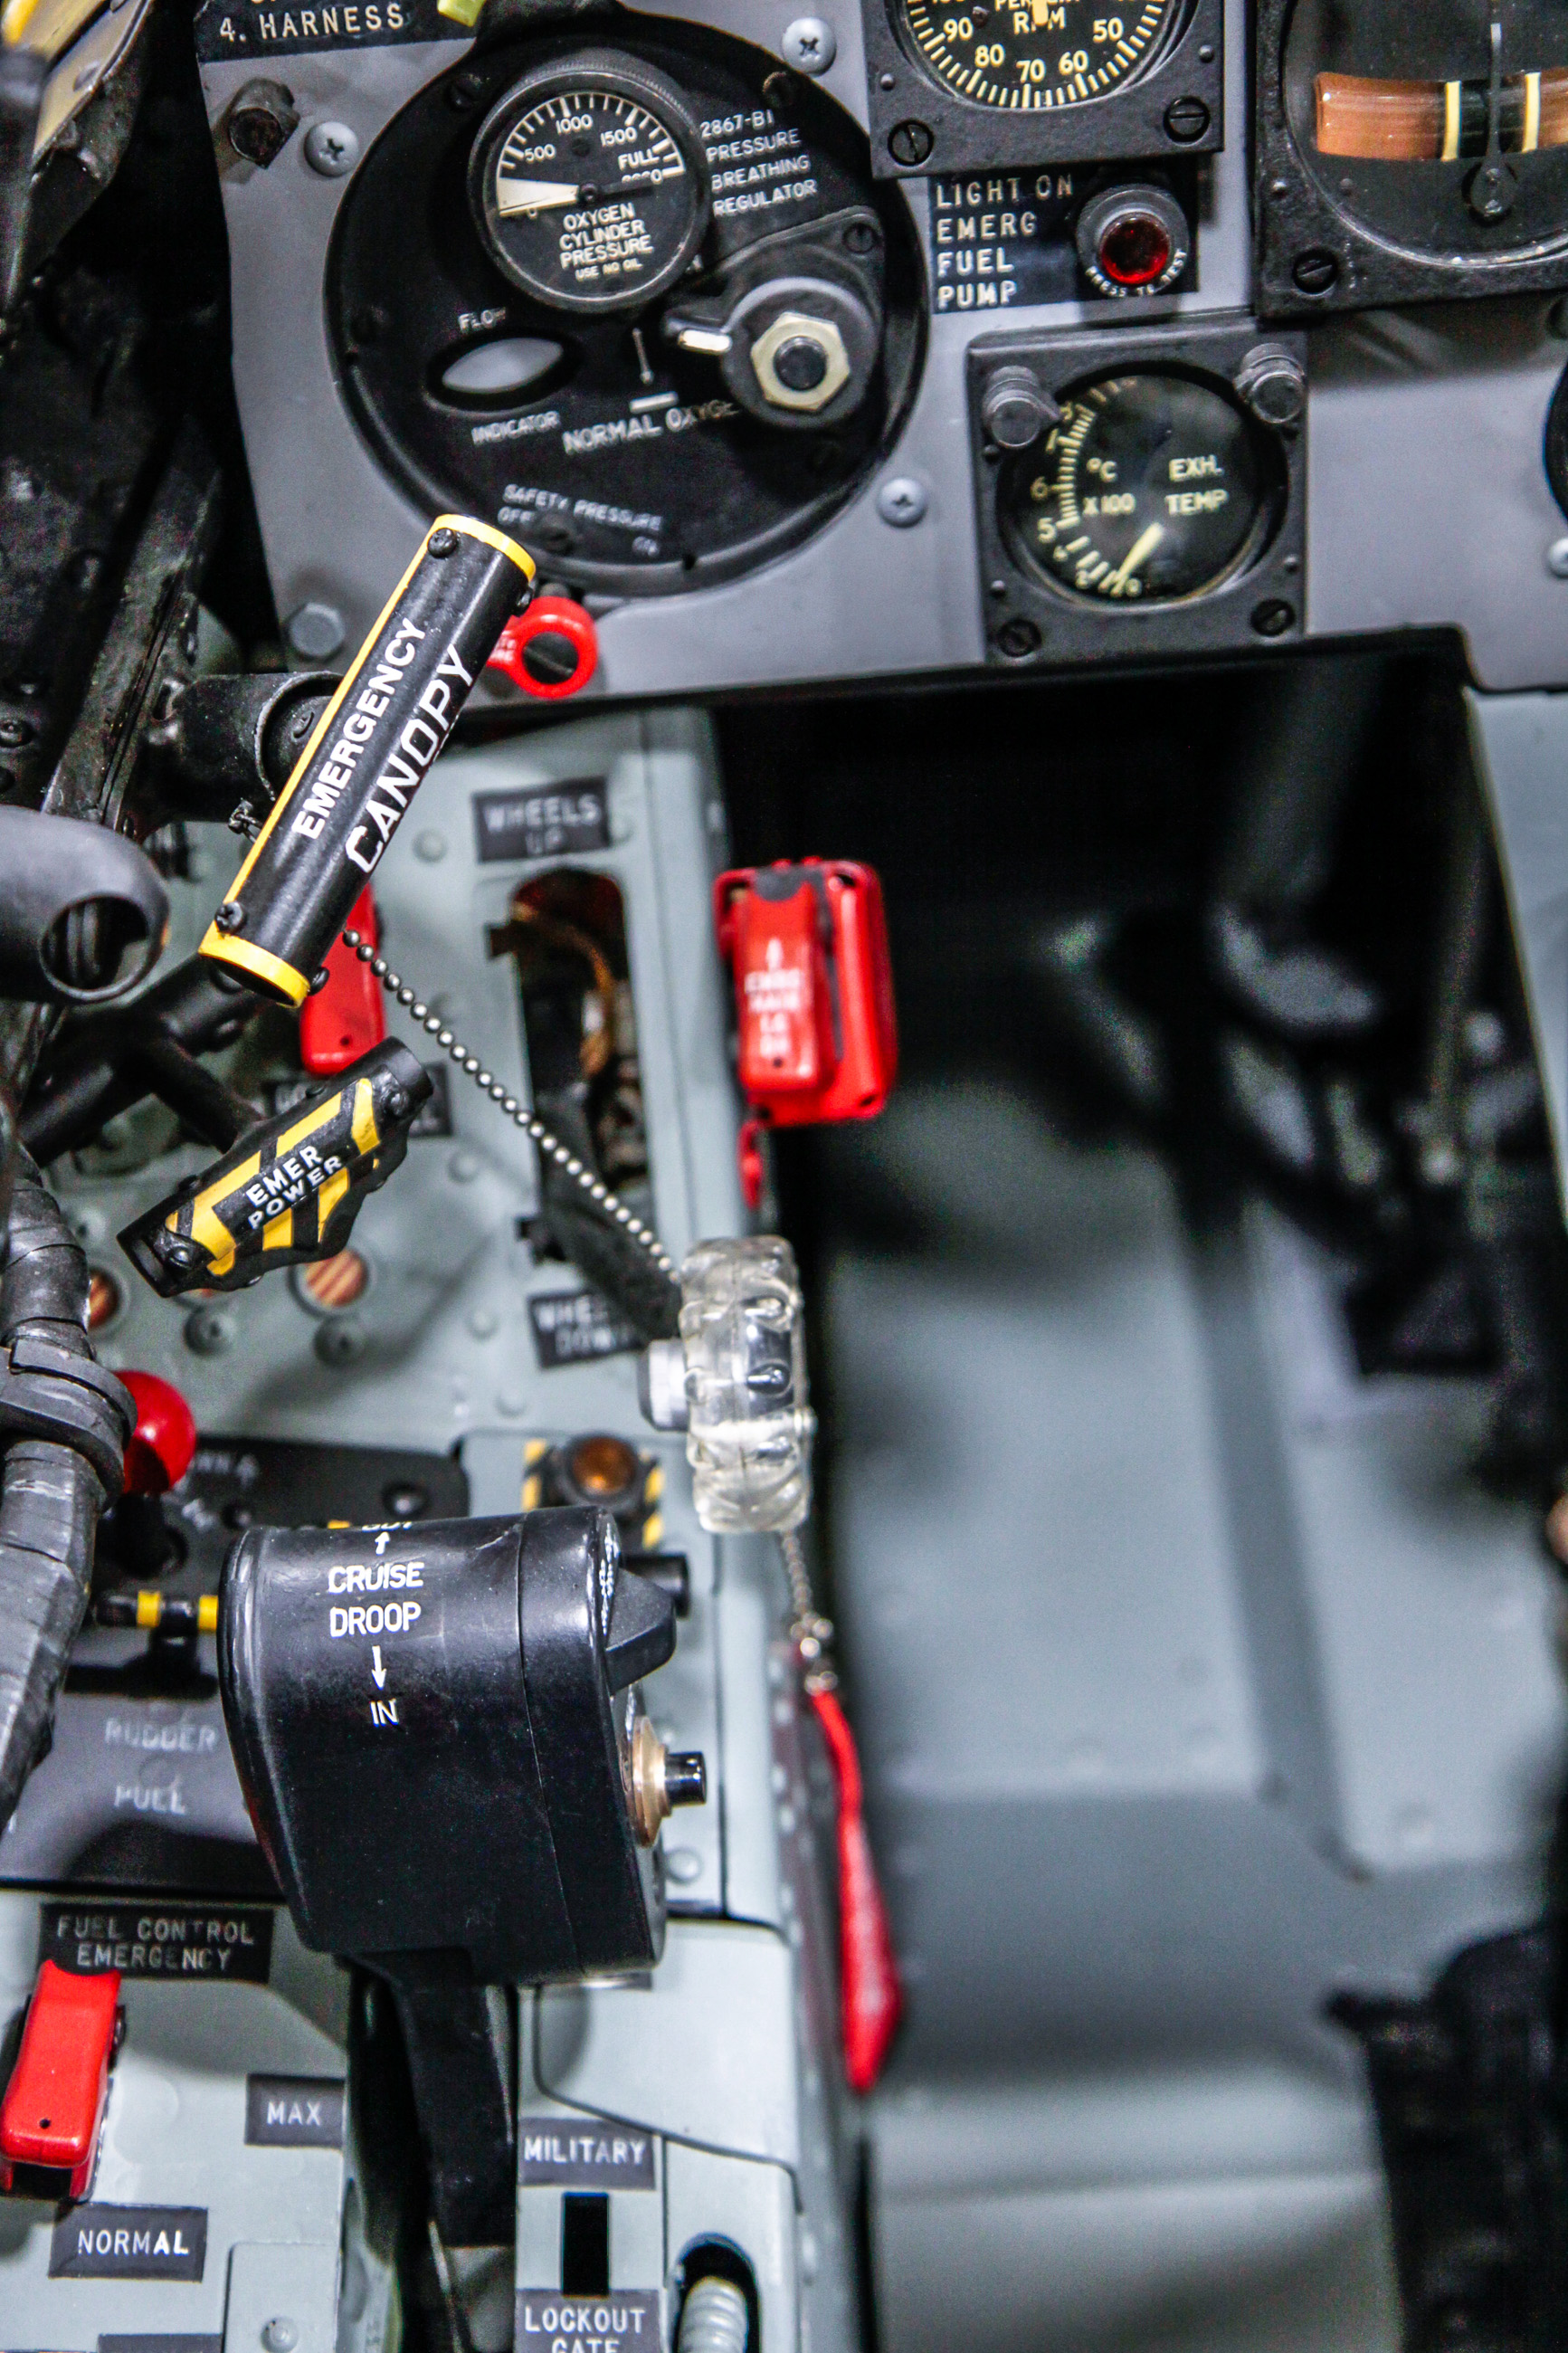 The Museum of Flight's restoration team performed a magnificent restoration of their Chance Vought XF8U-1 Crusader prototype. Here is some of the cockpit detail to show just how closely their team paid attention to the little details. (photo by Ted Huetter/Museum of Flight)